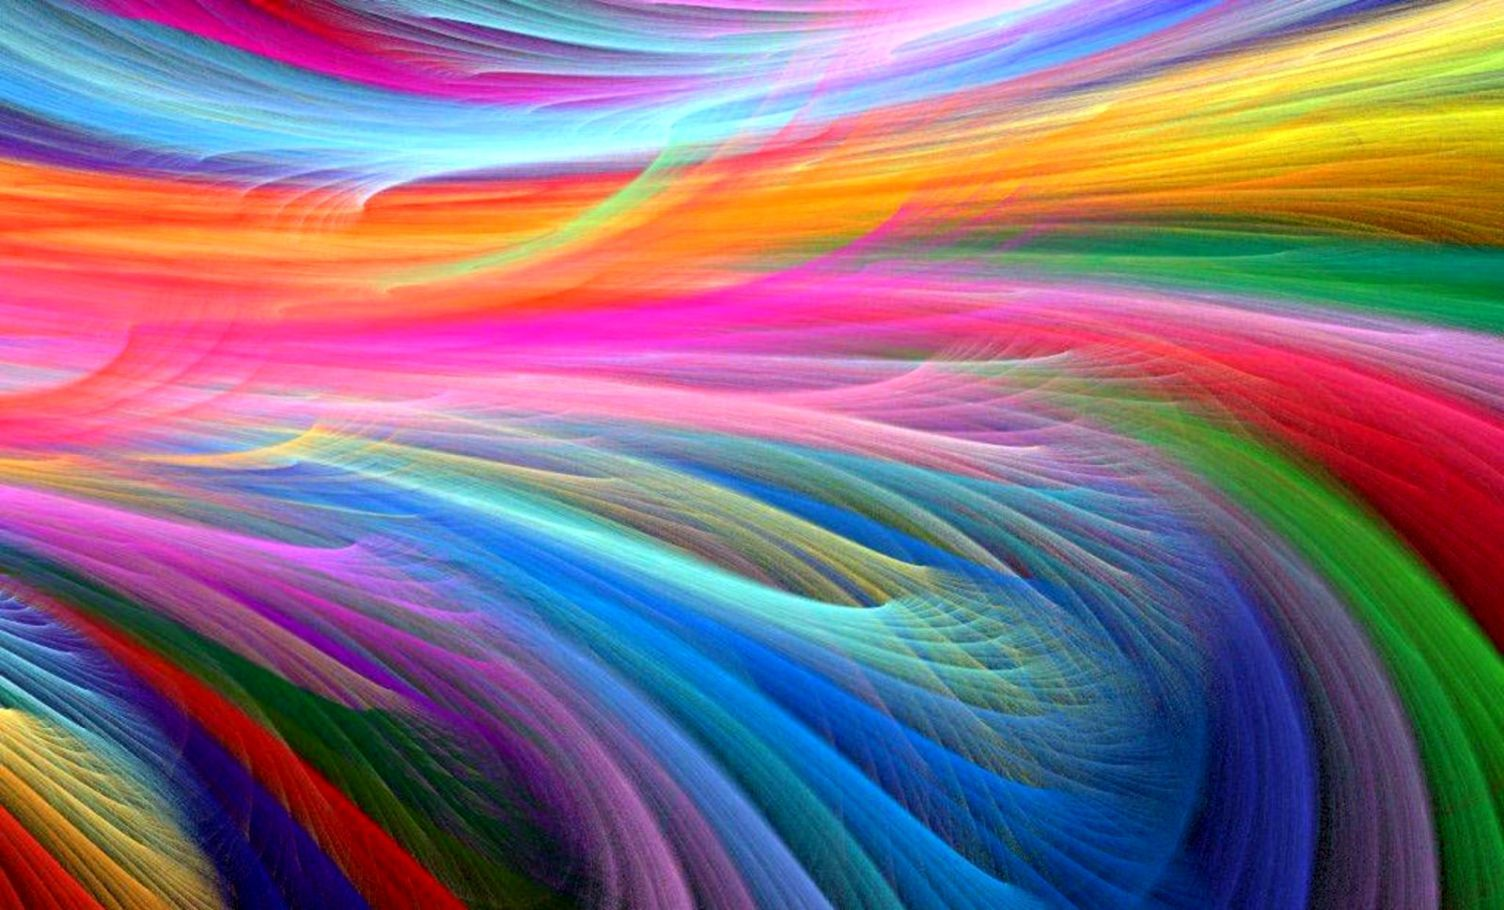 Abstract Colorful Wallpapers Hd Descarga gratuita | Wallpapers Beautiful